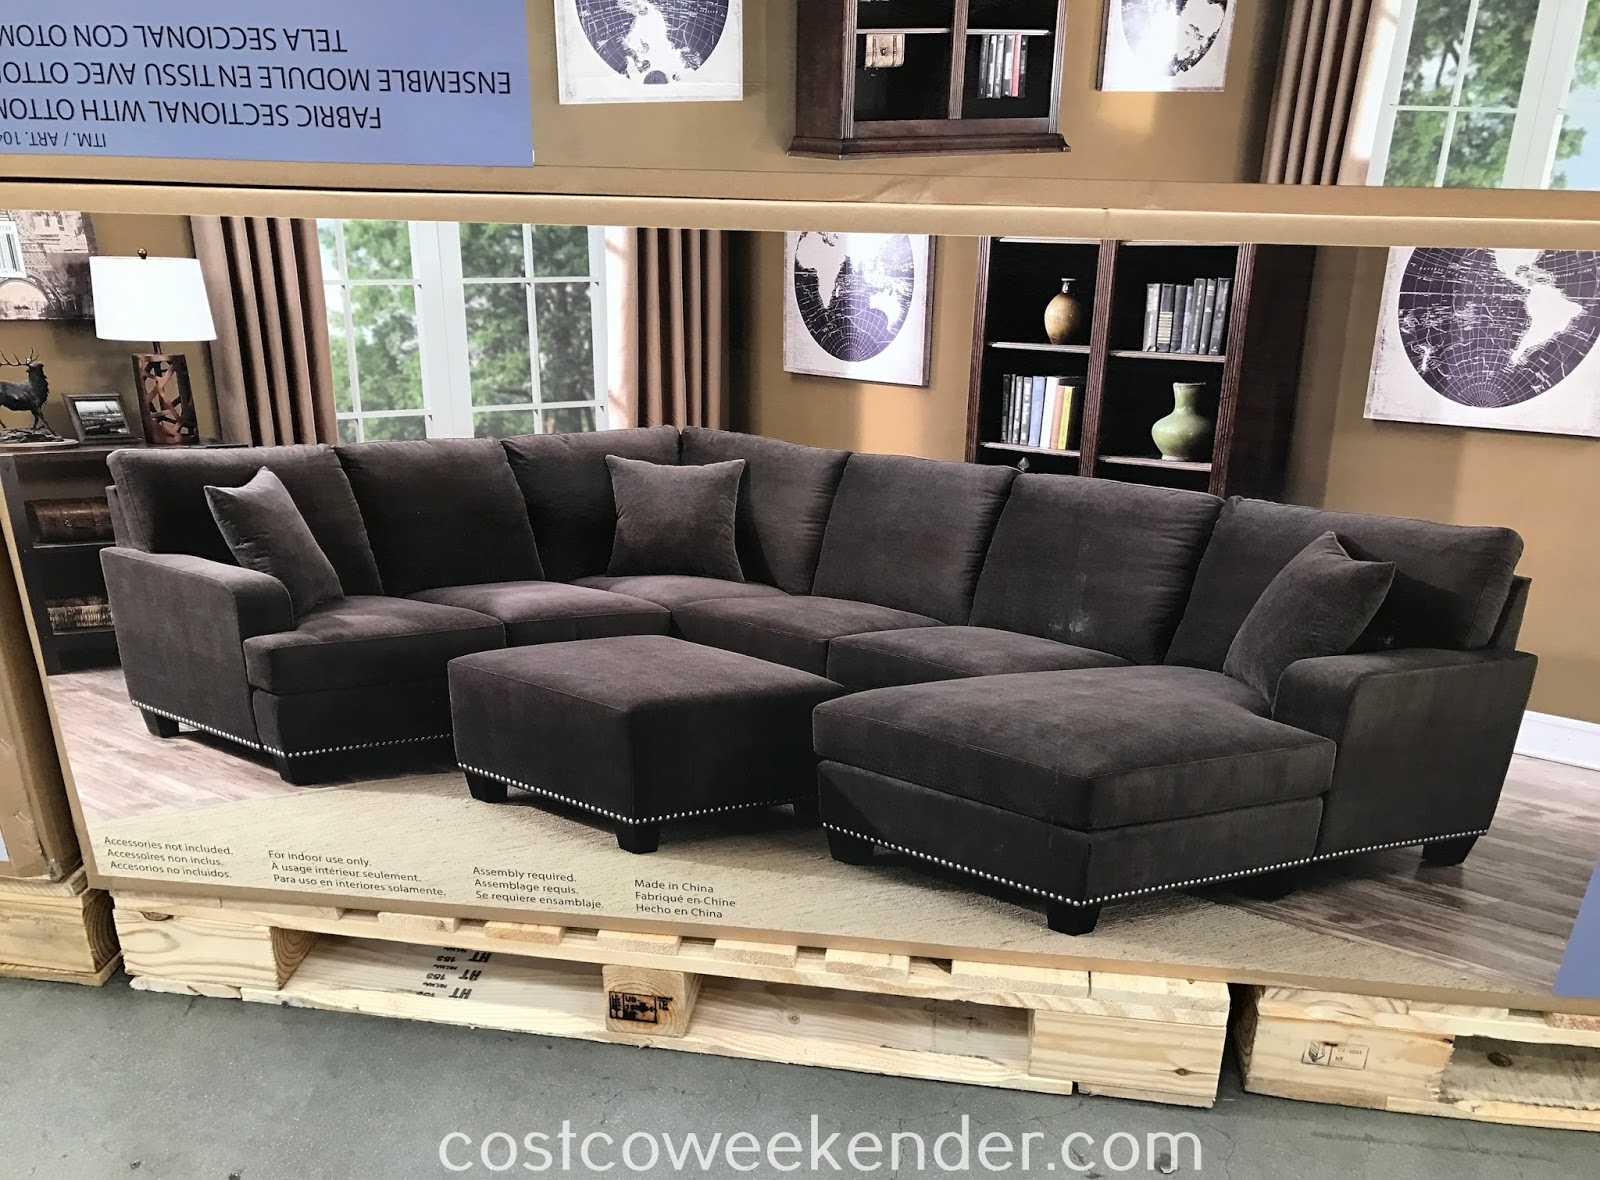 Sofa Costco Ca Faux Leather Paint Bainbridge Fabric Sectional With Ottoman Weekender